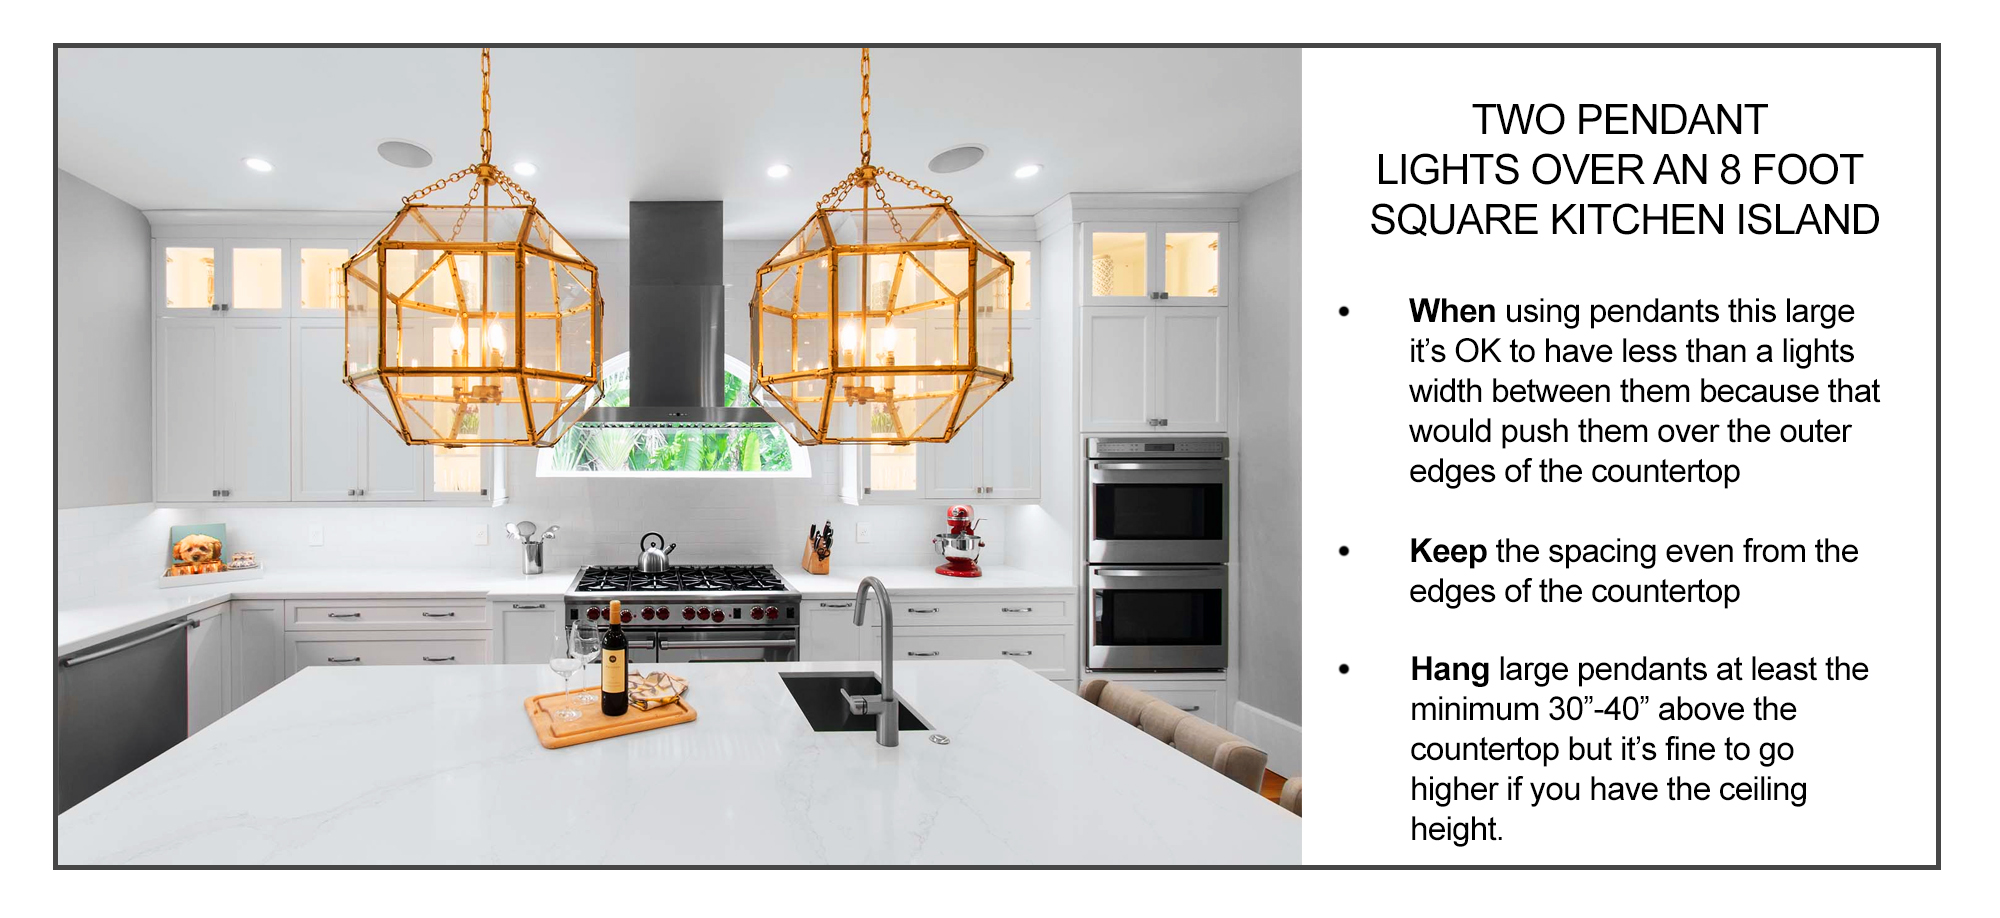 how to space two large pendant lights over a kitchen island inforgraphic